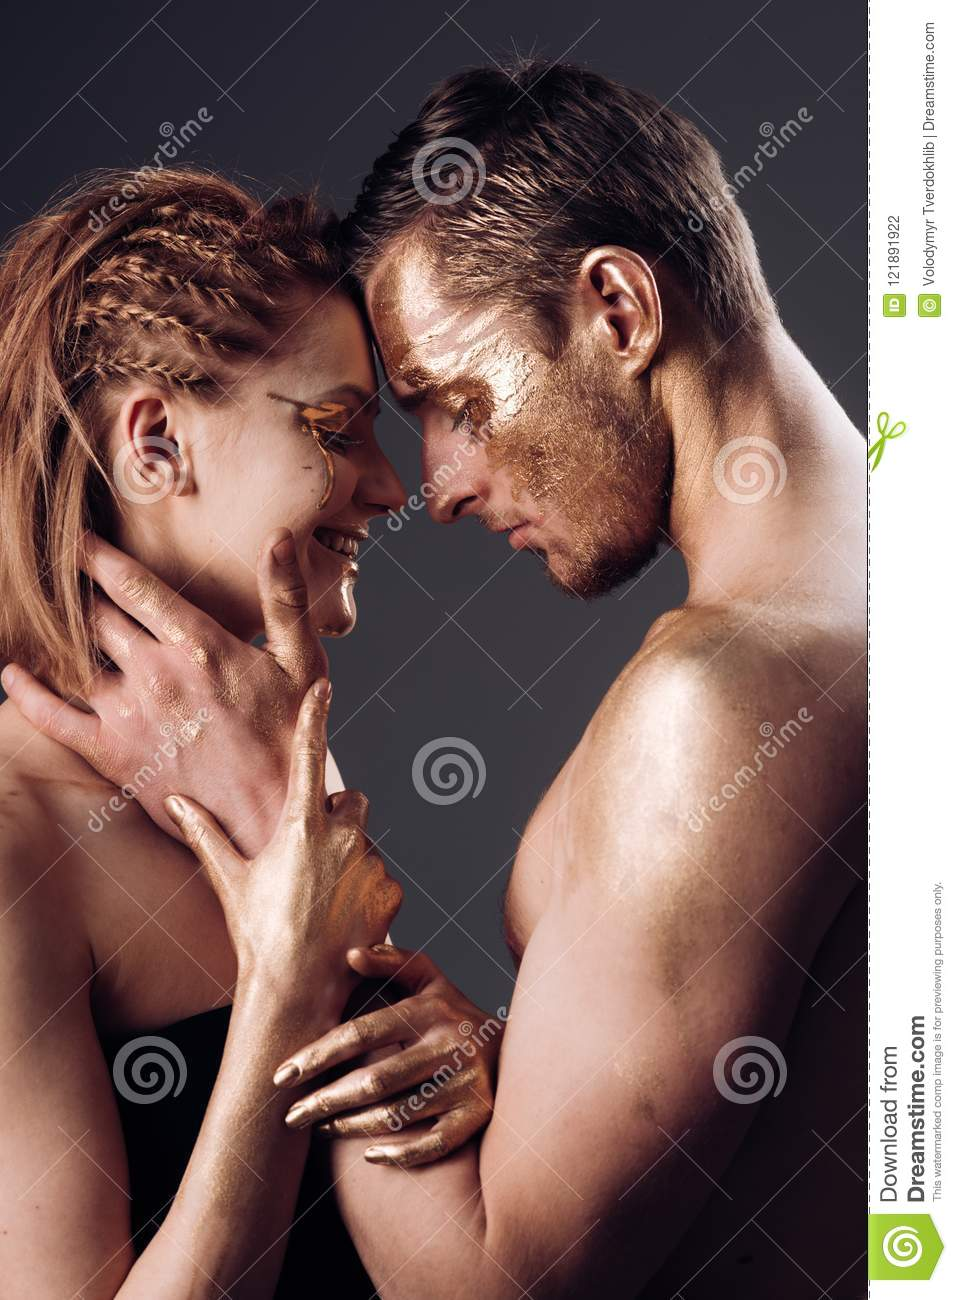 Erotic Games Of Couple In Love Couple With Golden Body Art Makeup Man And Woman Relations Golden Collagen Mask Stock Photo Image Of Couple Body 121891922